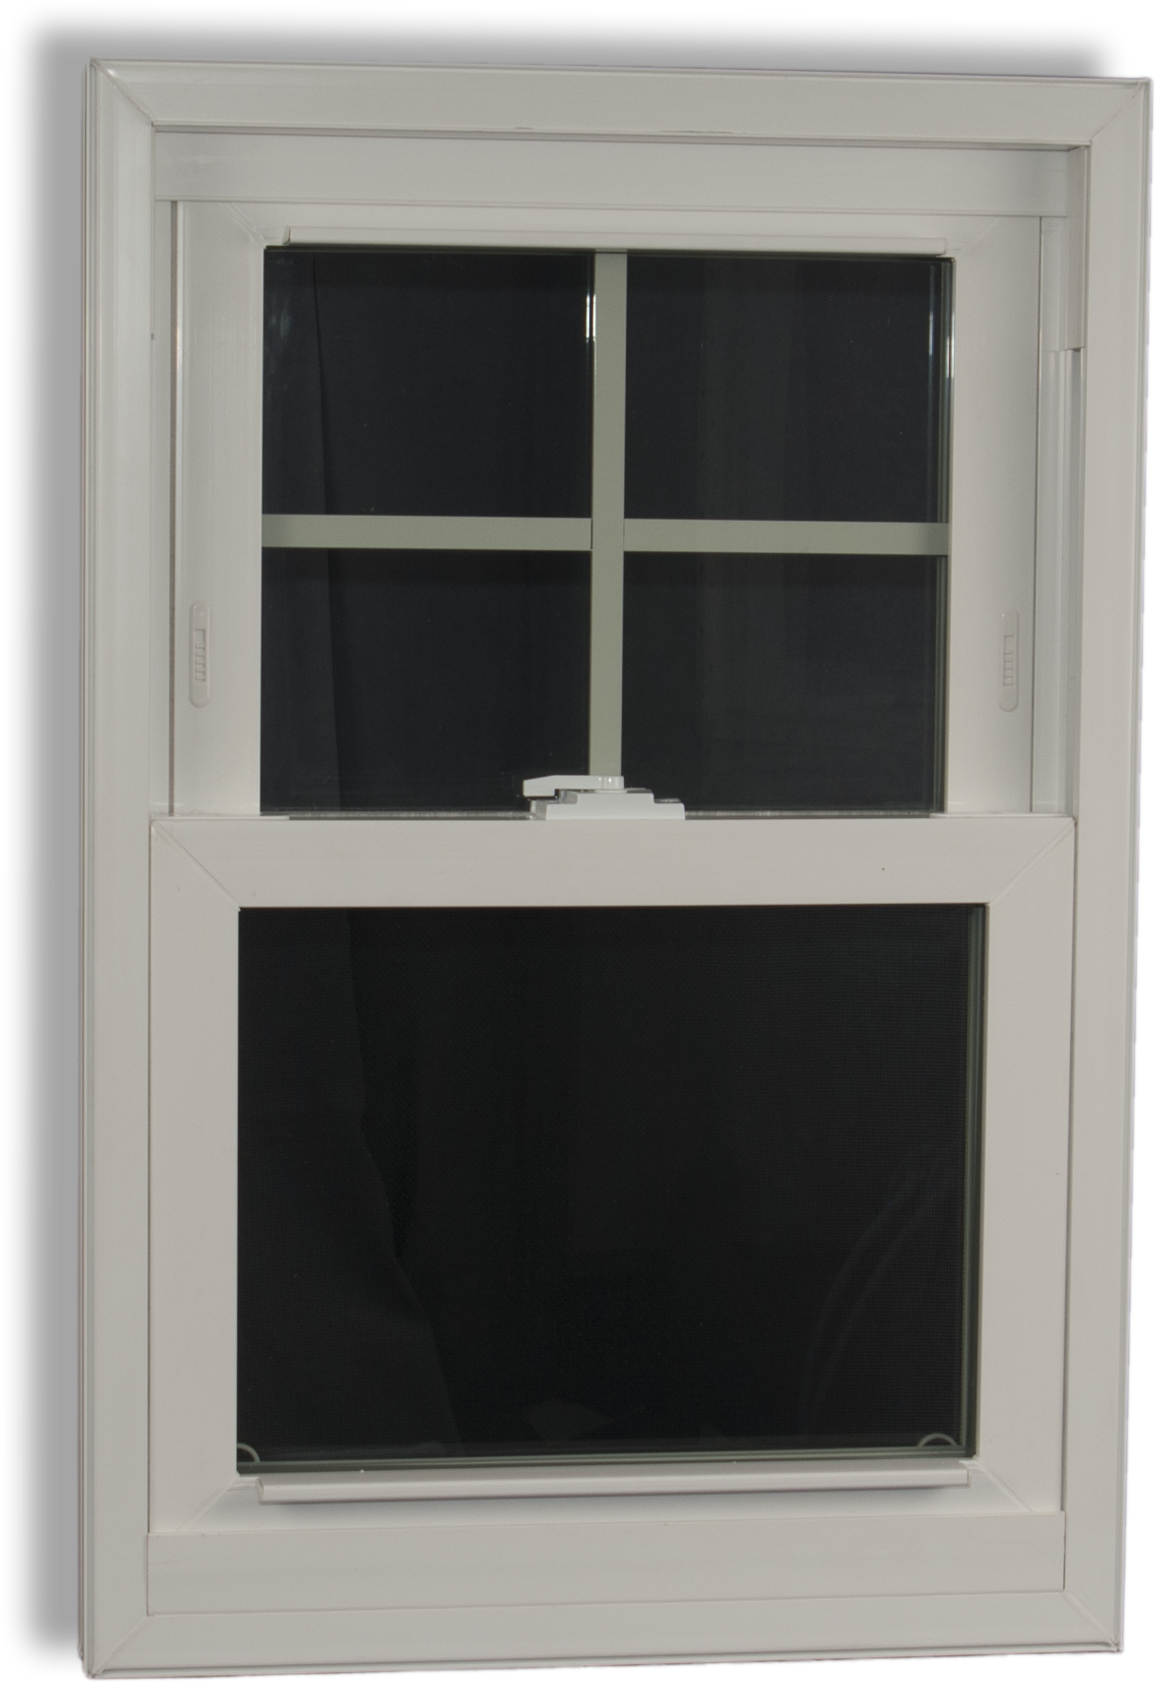 D202547 copy vinyl window manufacturer for Window manufacturers